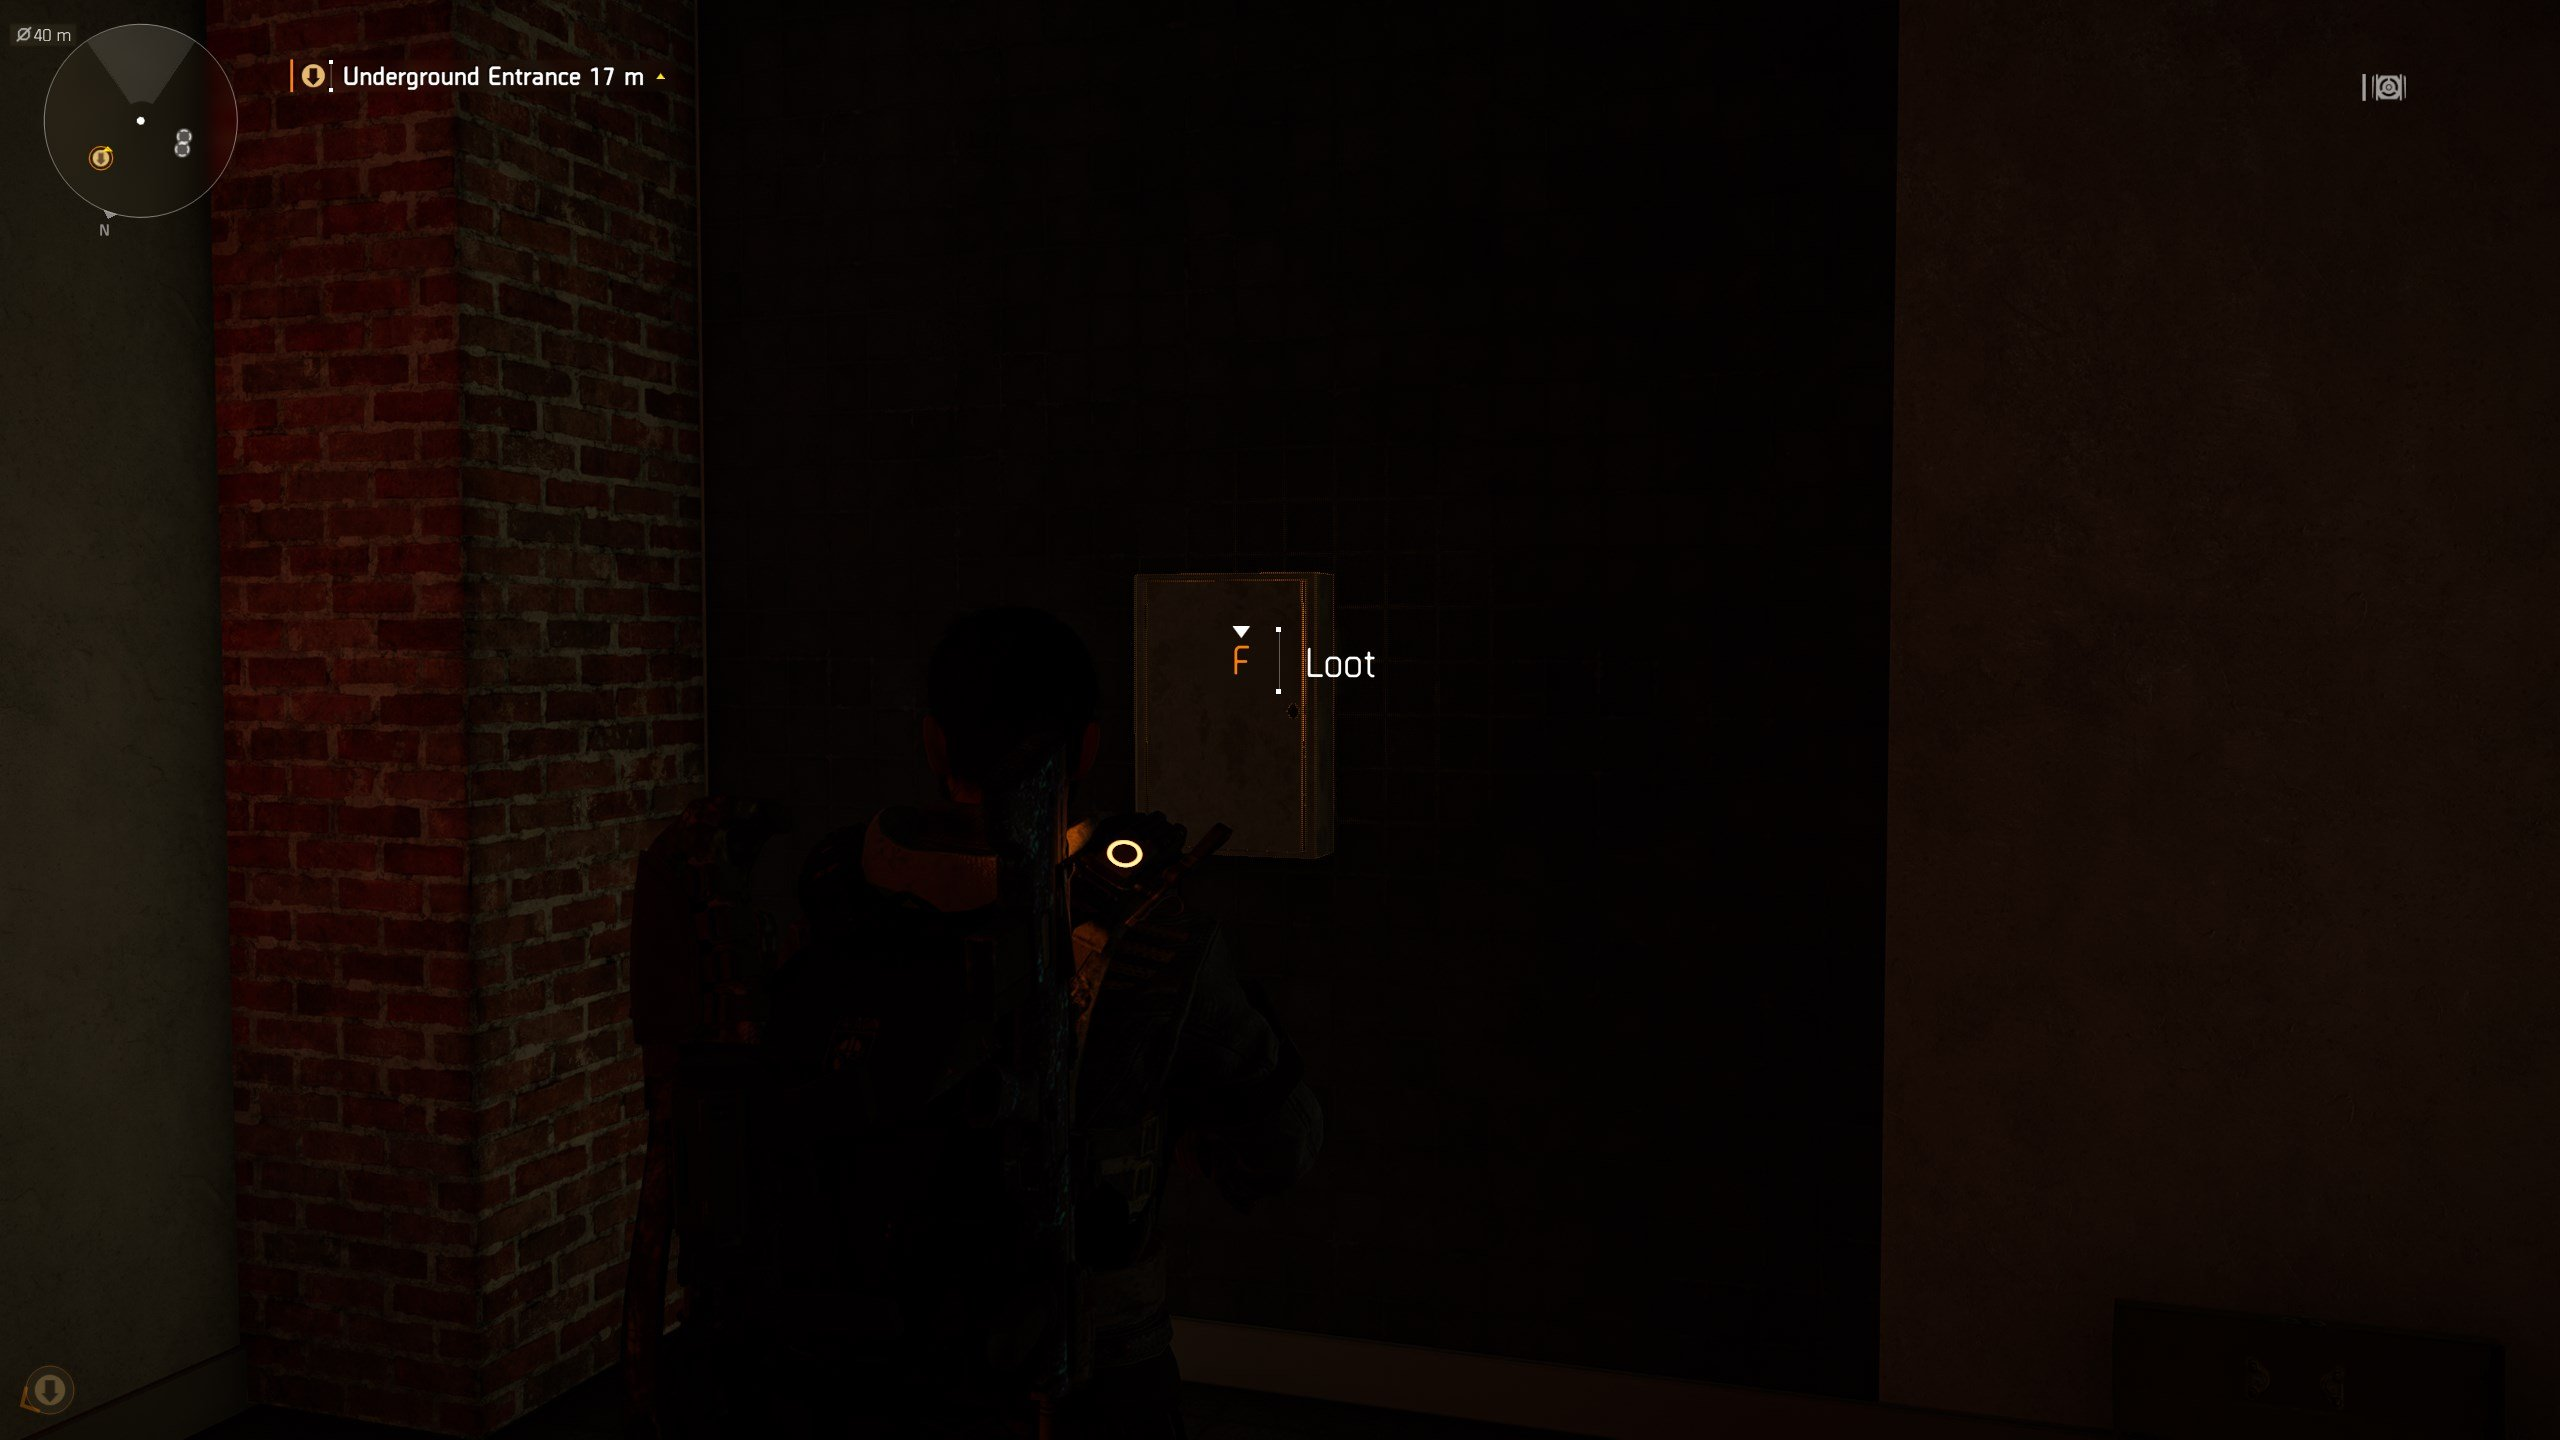 How to get Faction Cache Keys in The Division 2 - lootable key box glowing in the tunnels